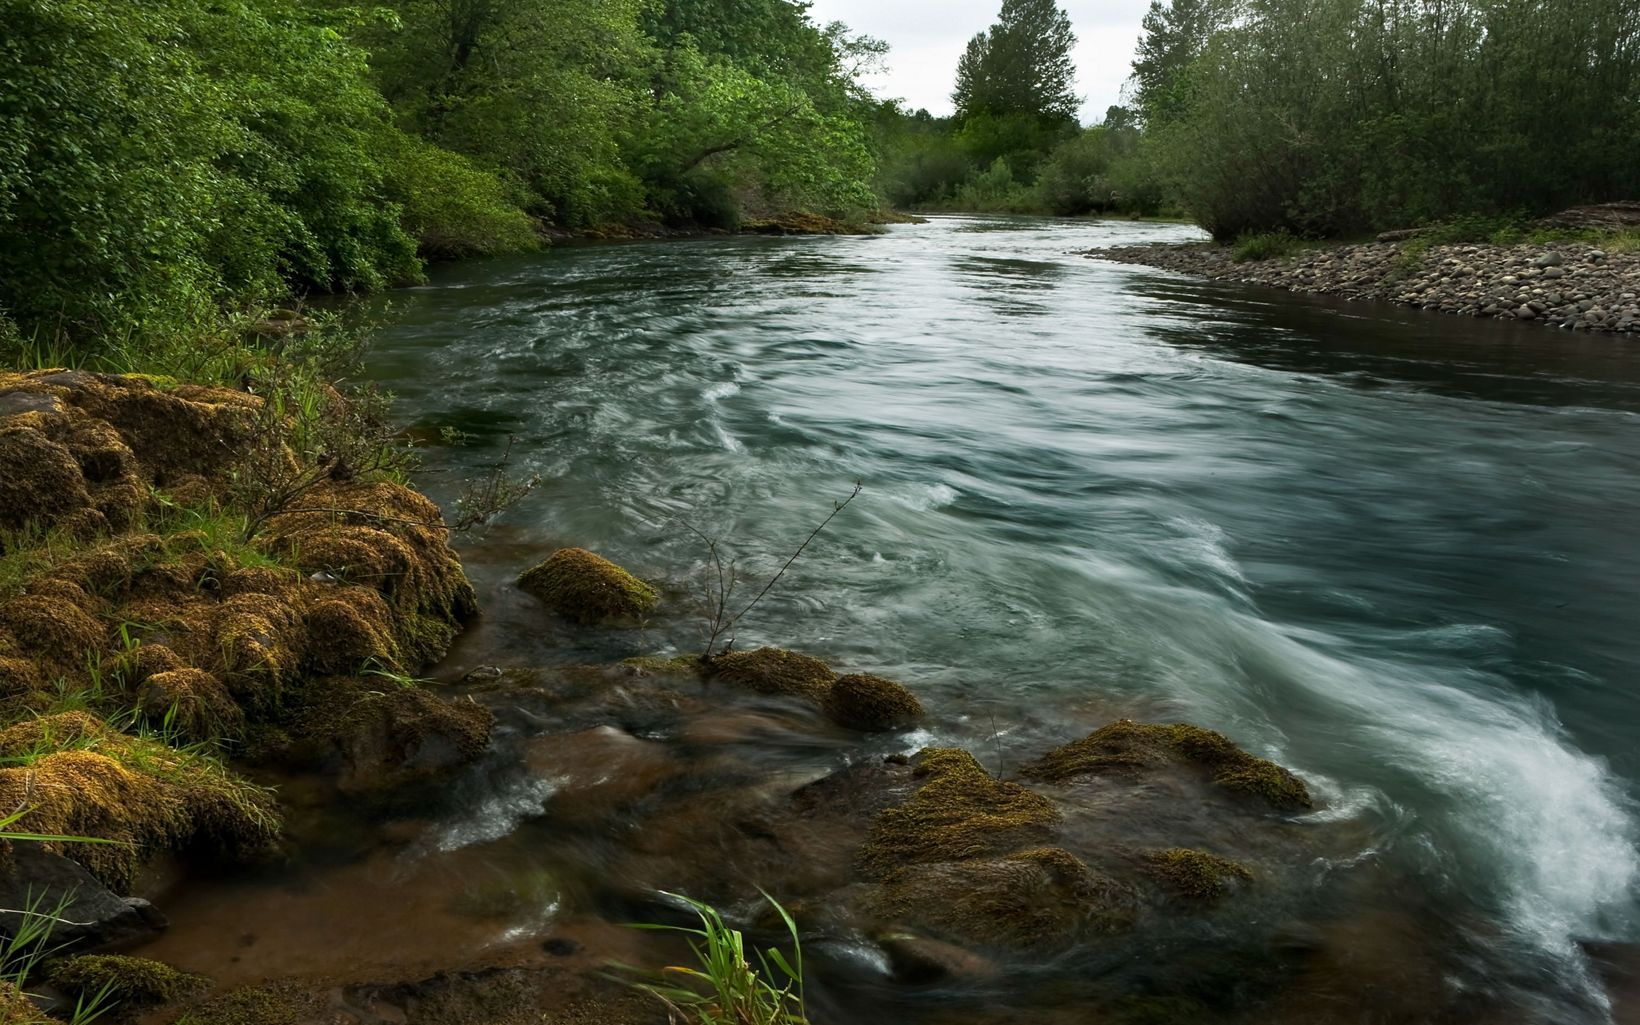 (LIMITED INTERNAL RIGHTS) At the confluence of the Middle and Coast Forks of Oregon's Willamette River, cool waters, thickwoodlands and vast wetlands represent a unique chance to preserve increasingly rare elements of the Willamette Valley's natural heritage. Photo credit: © Rick McEwan